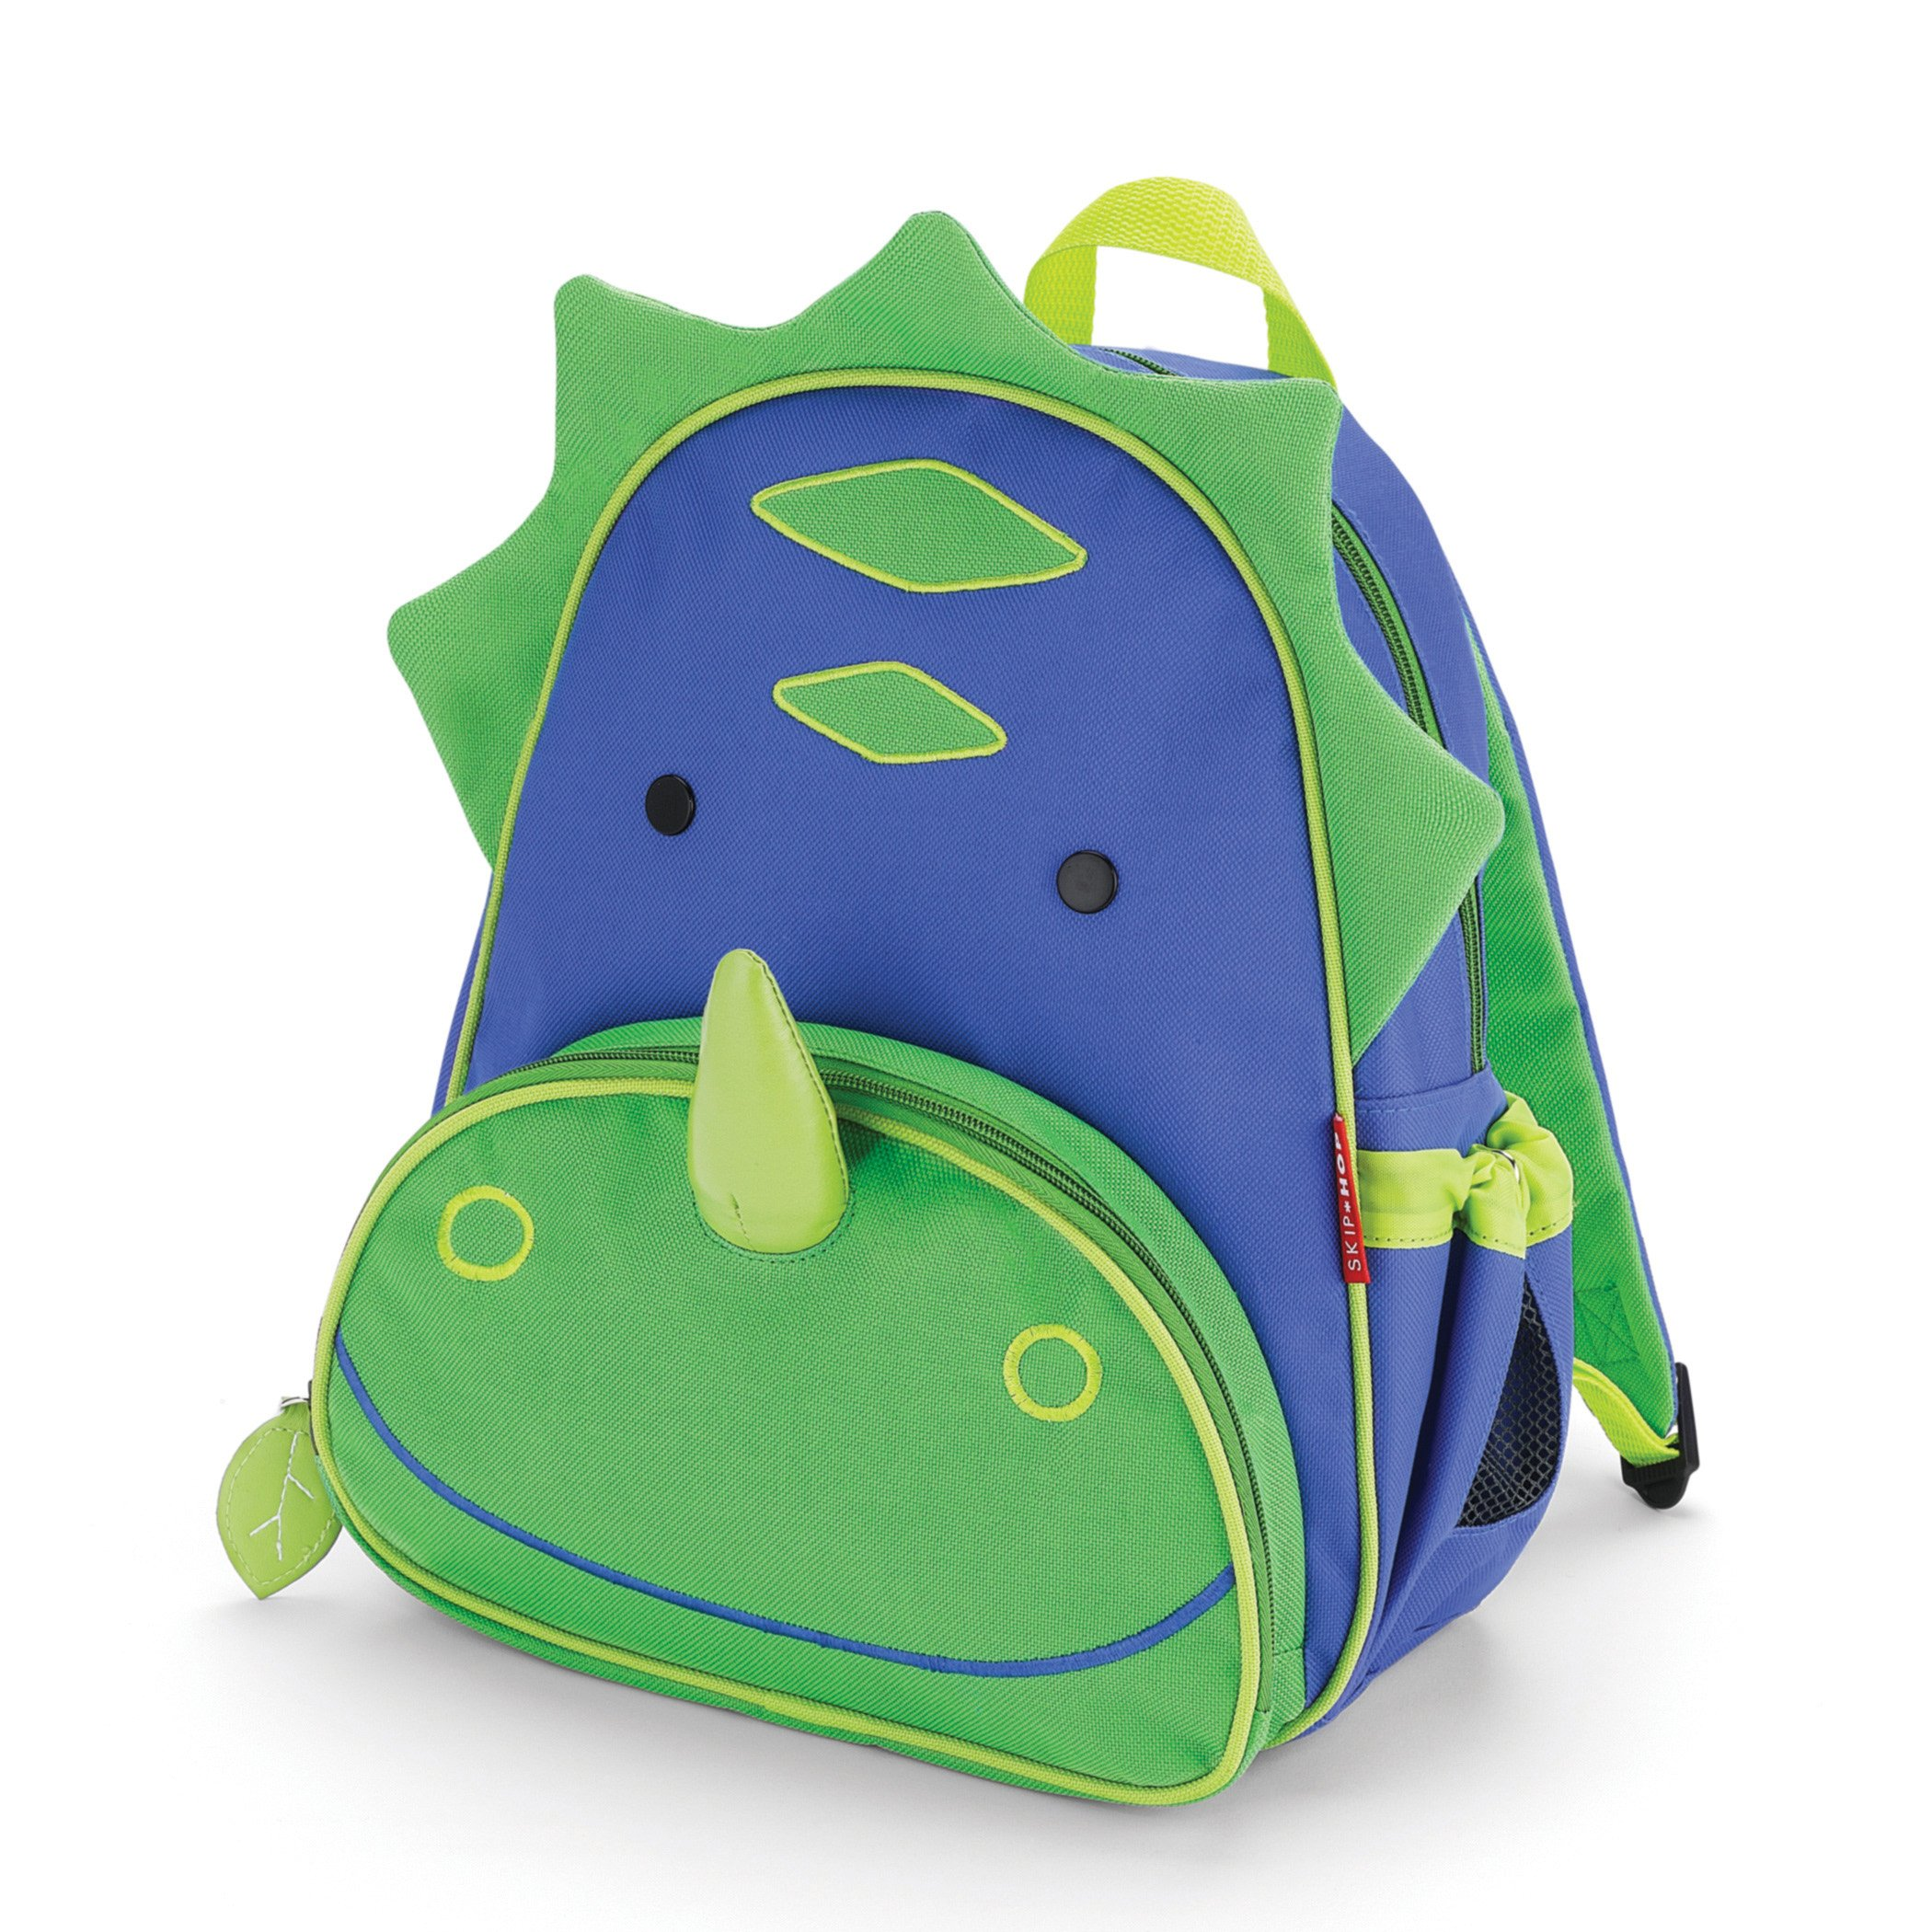 스킵합 공룡 책가방, 12인치 Skip Hop Toddler Backpack, 12 Dinosaur School Bag, Multi